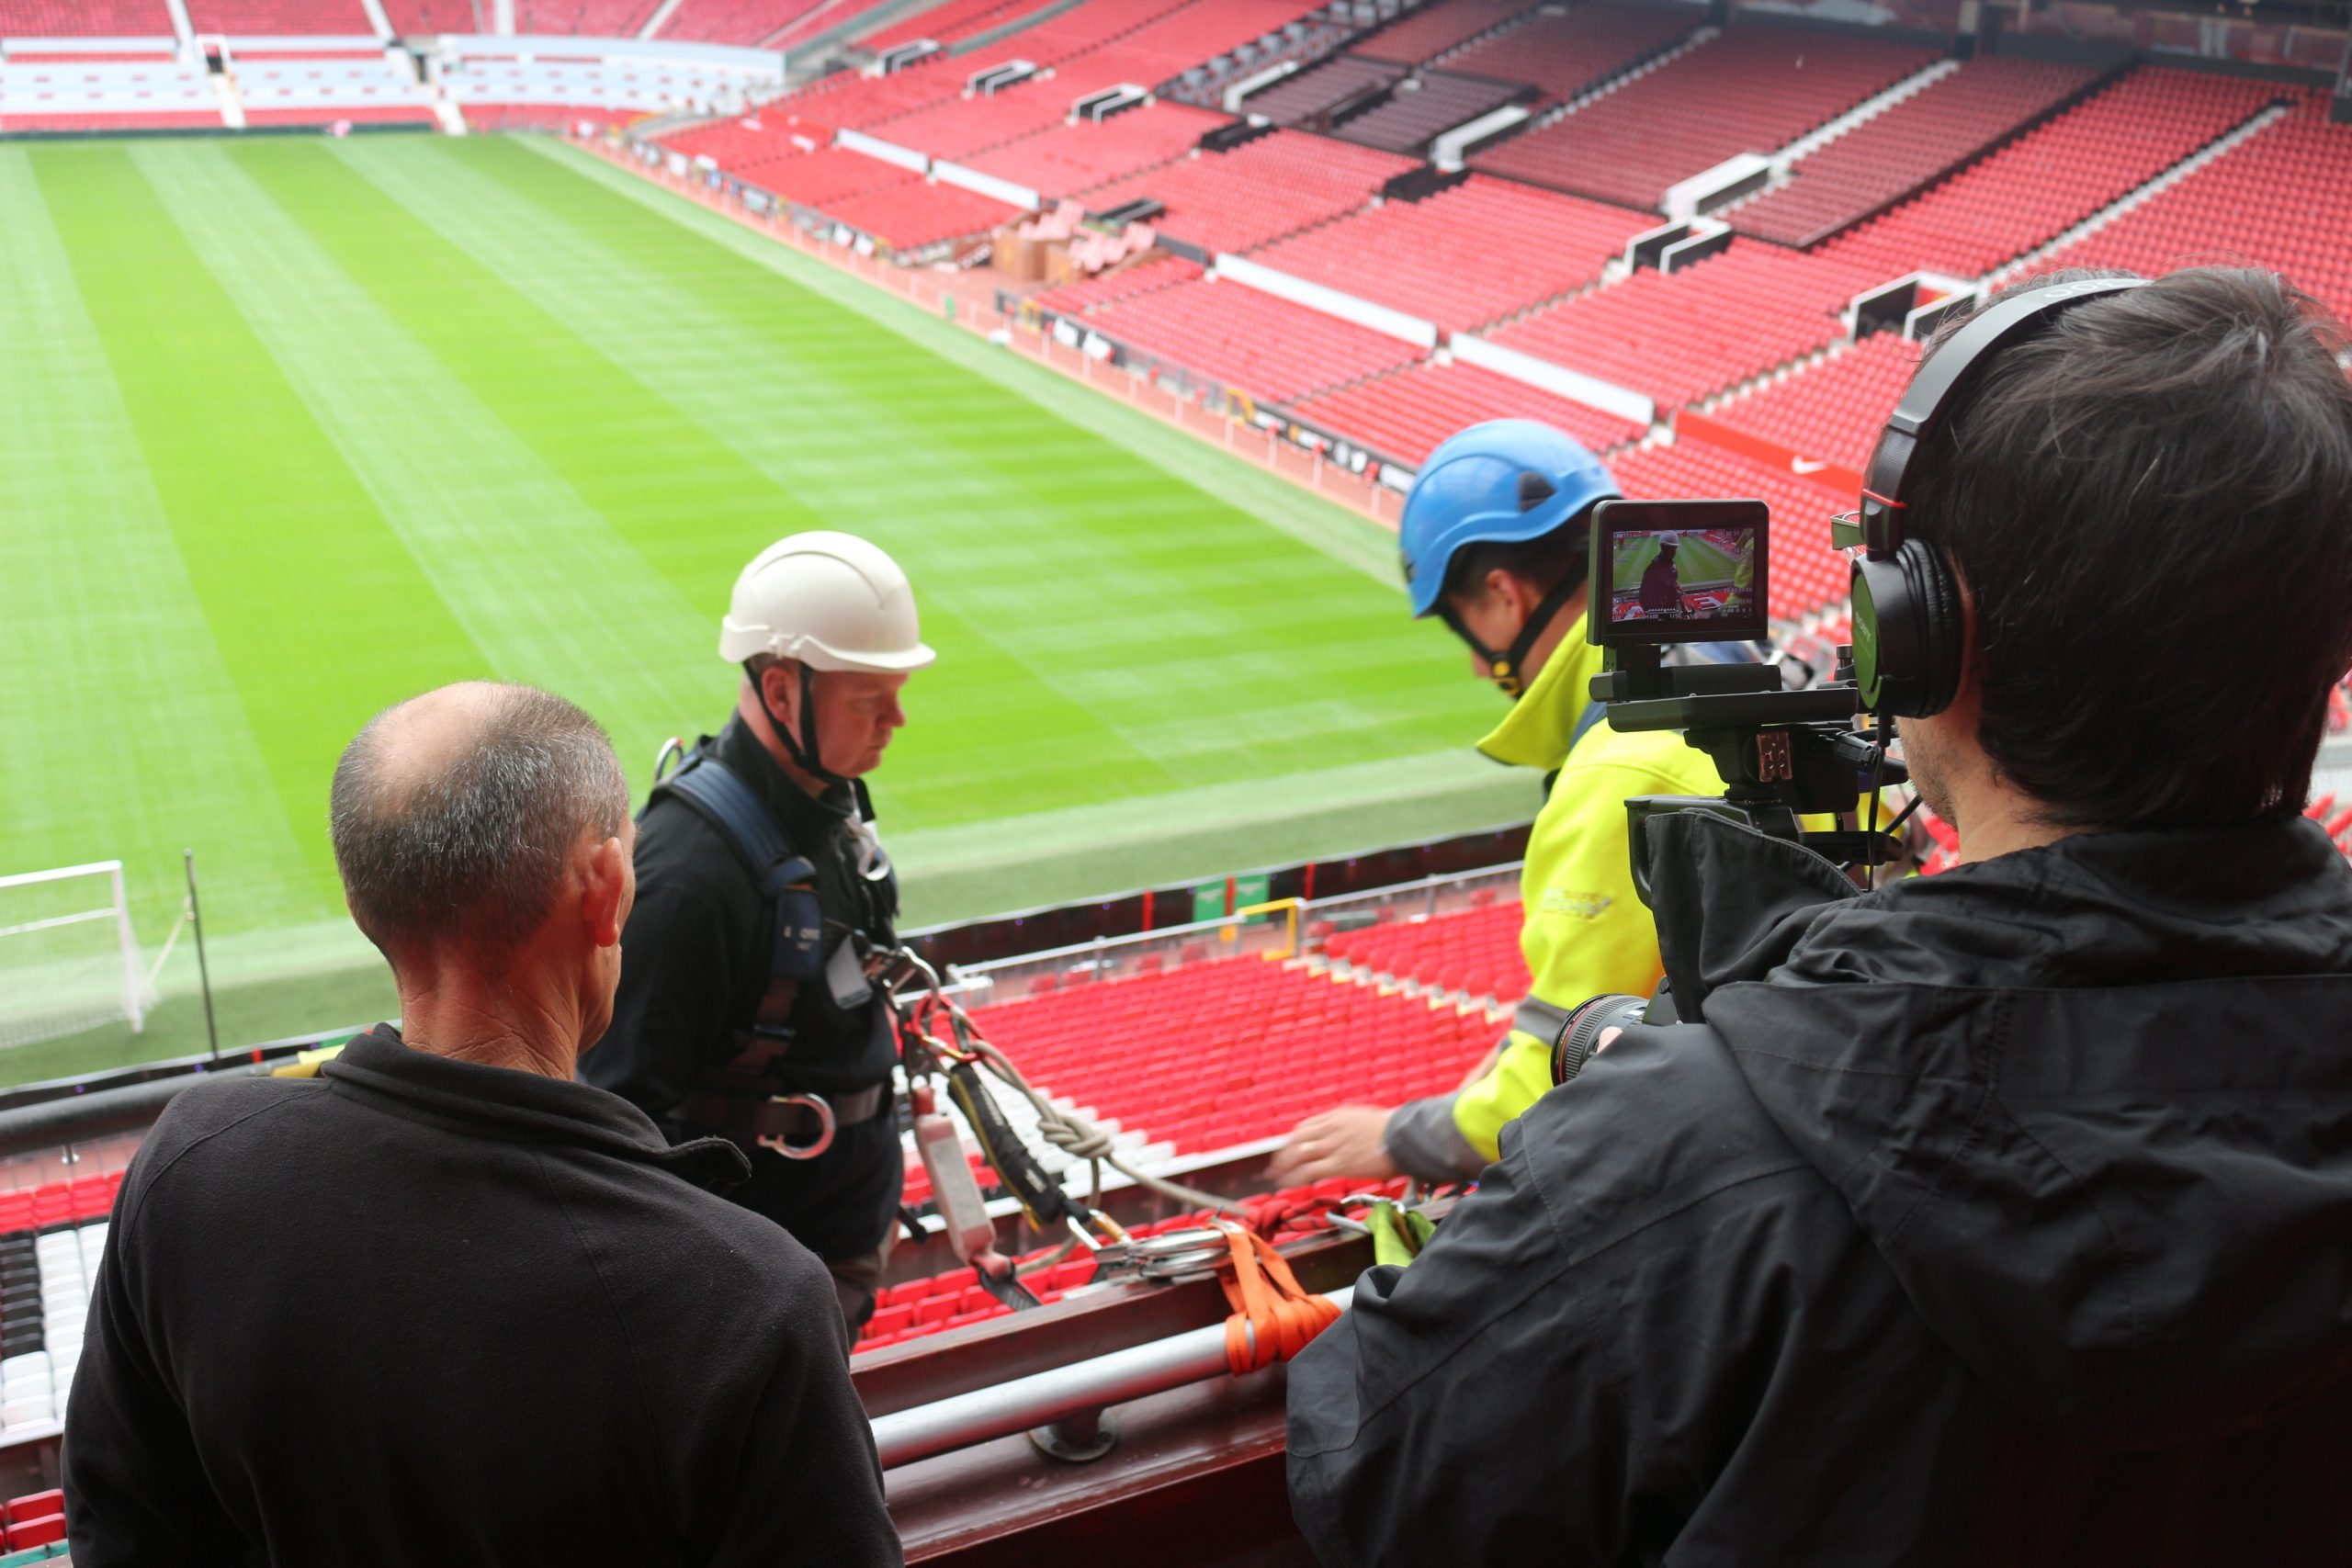 Work at Height training at Old Trafford Football Stadium